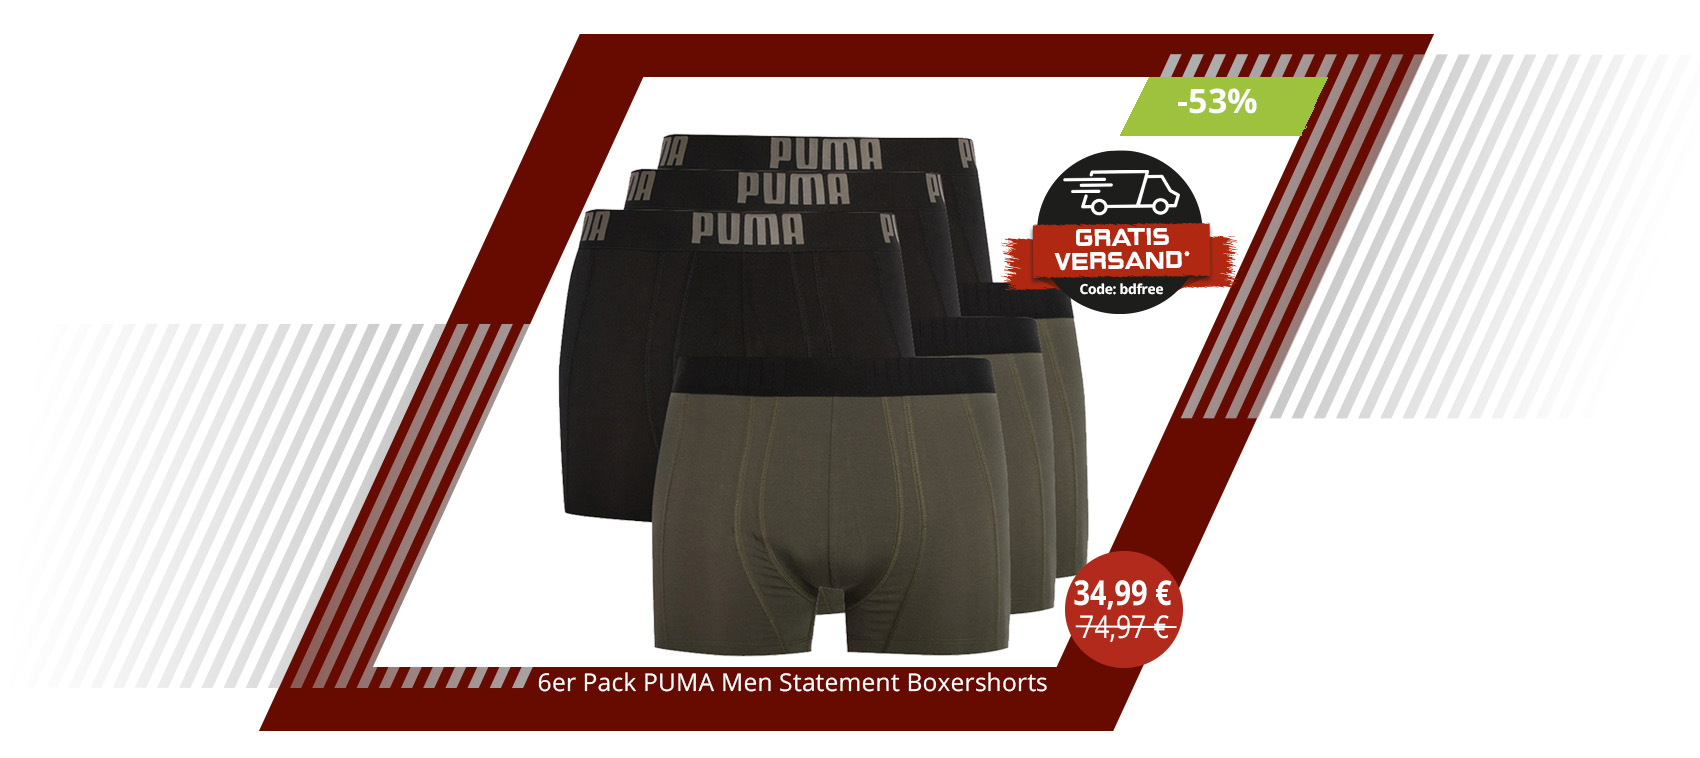 6er Pack PUMA Men Statement Boxershorts